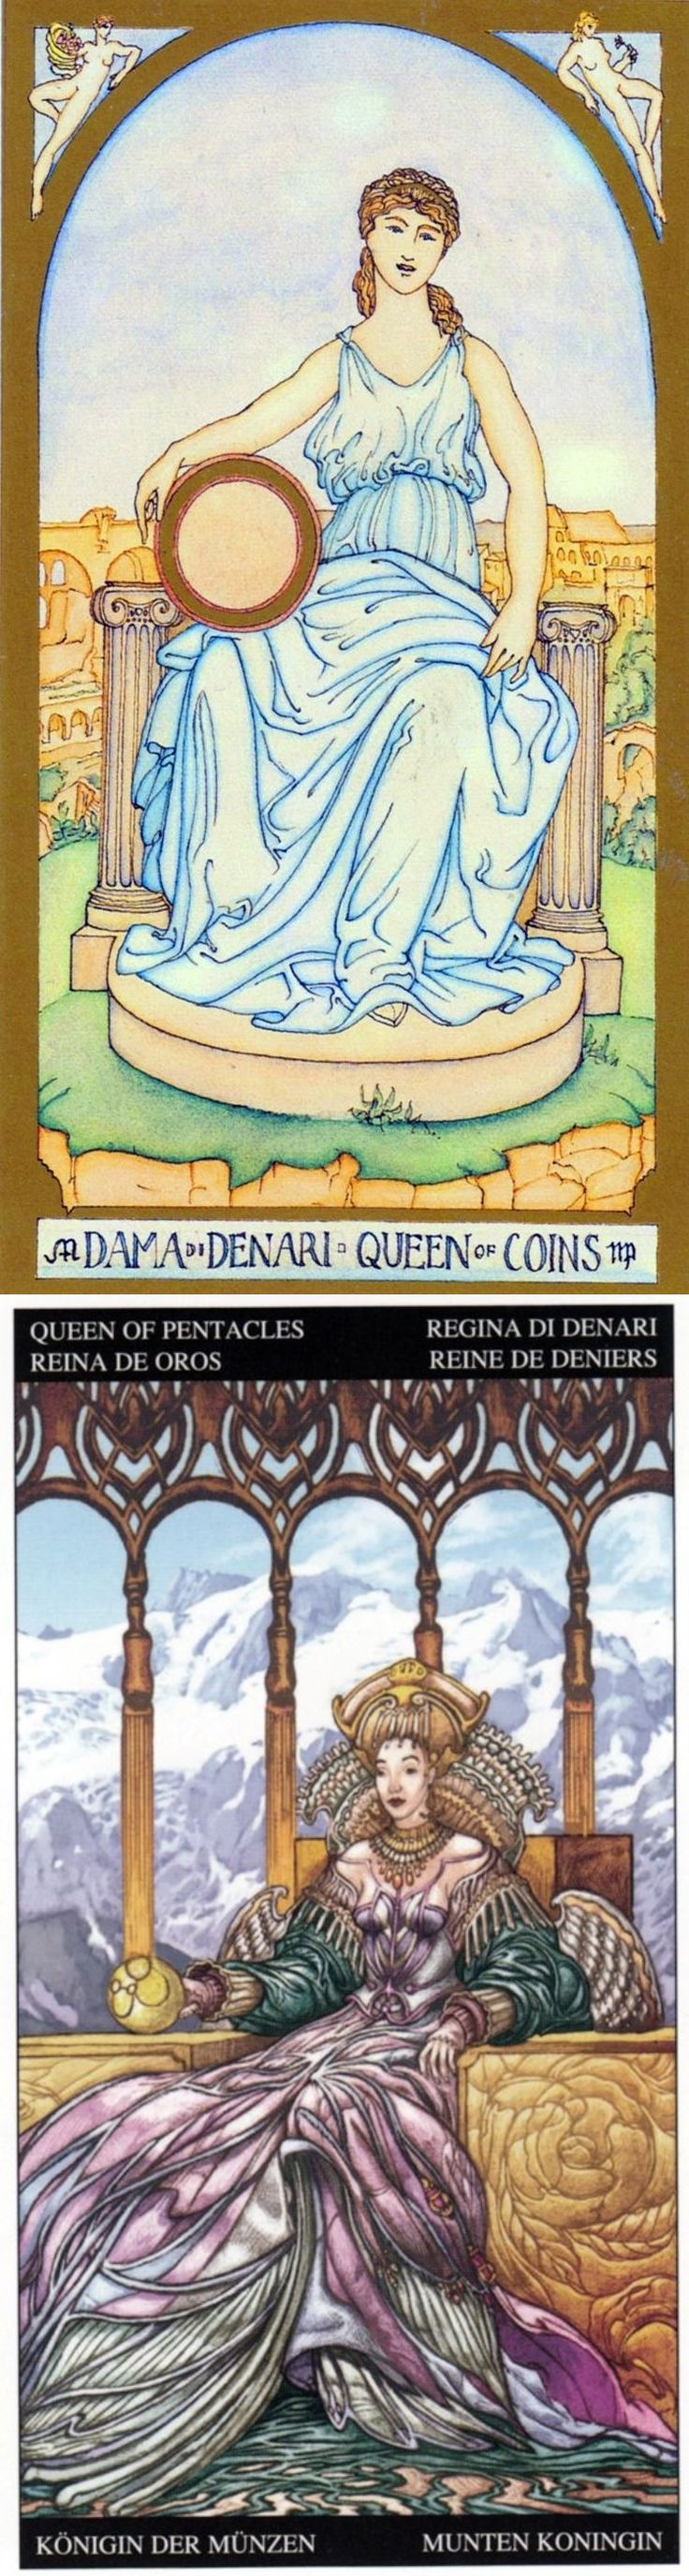 Queen of Pentacles: provides material comfort and imbalance of work and home life (reverse). Renaissance Tarot deck and Universal Fantasy Tarot deck: tarotwisdom, daily tarot reading spread vs online card reading. Best 2018 playing cards design and oracles.